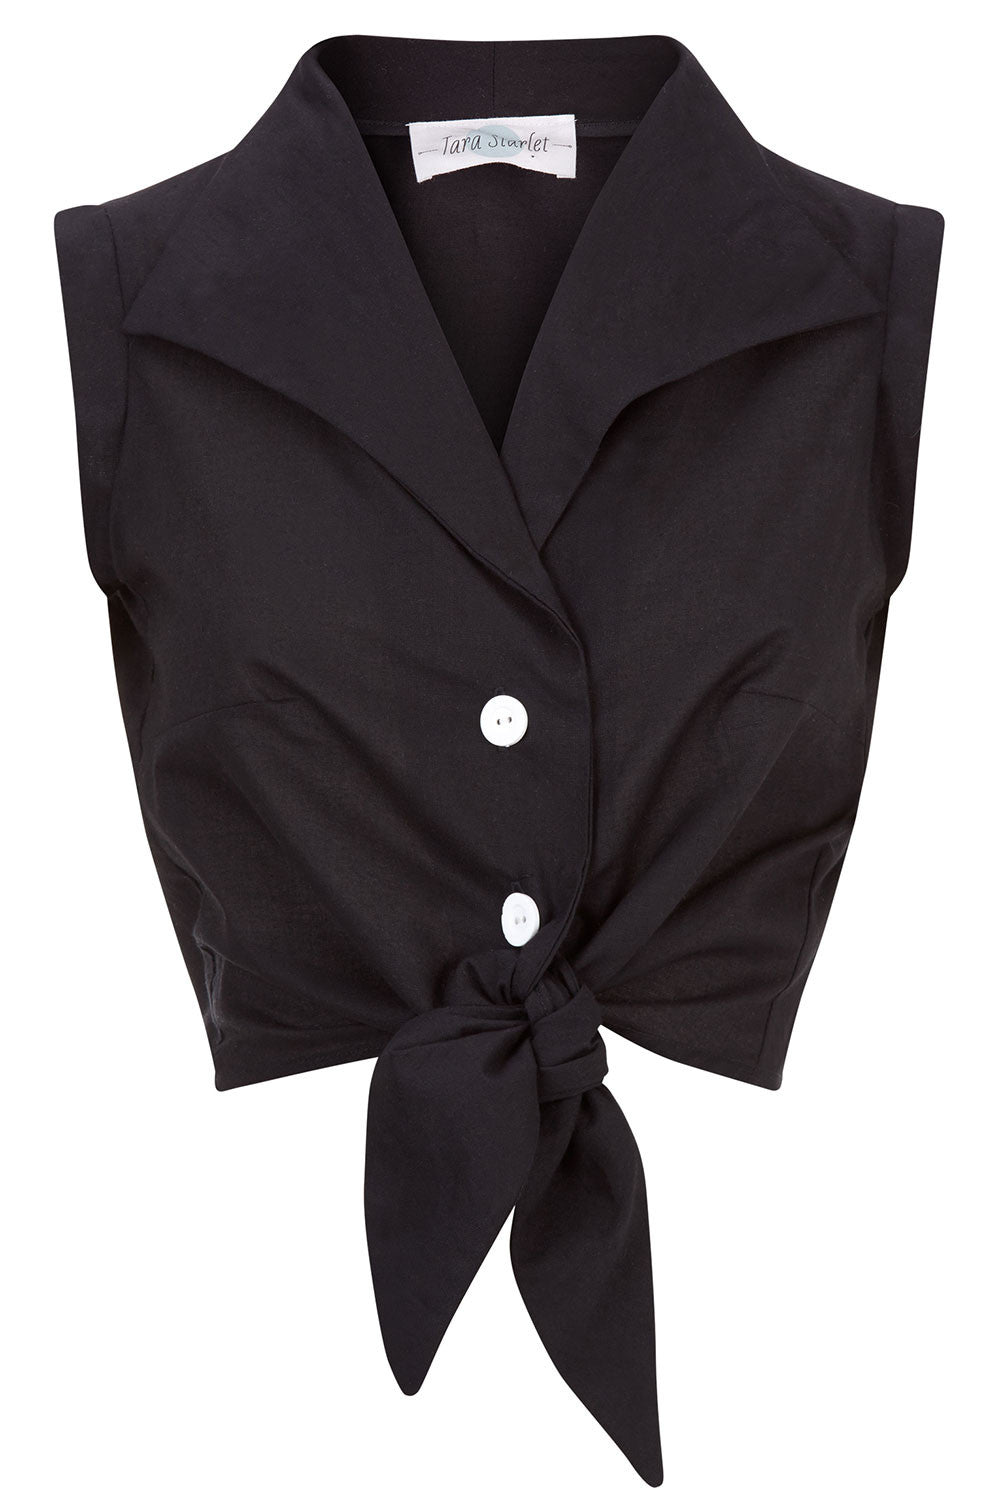 The Tie-front Shirt - Black